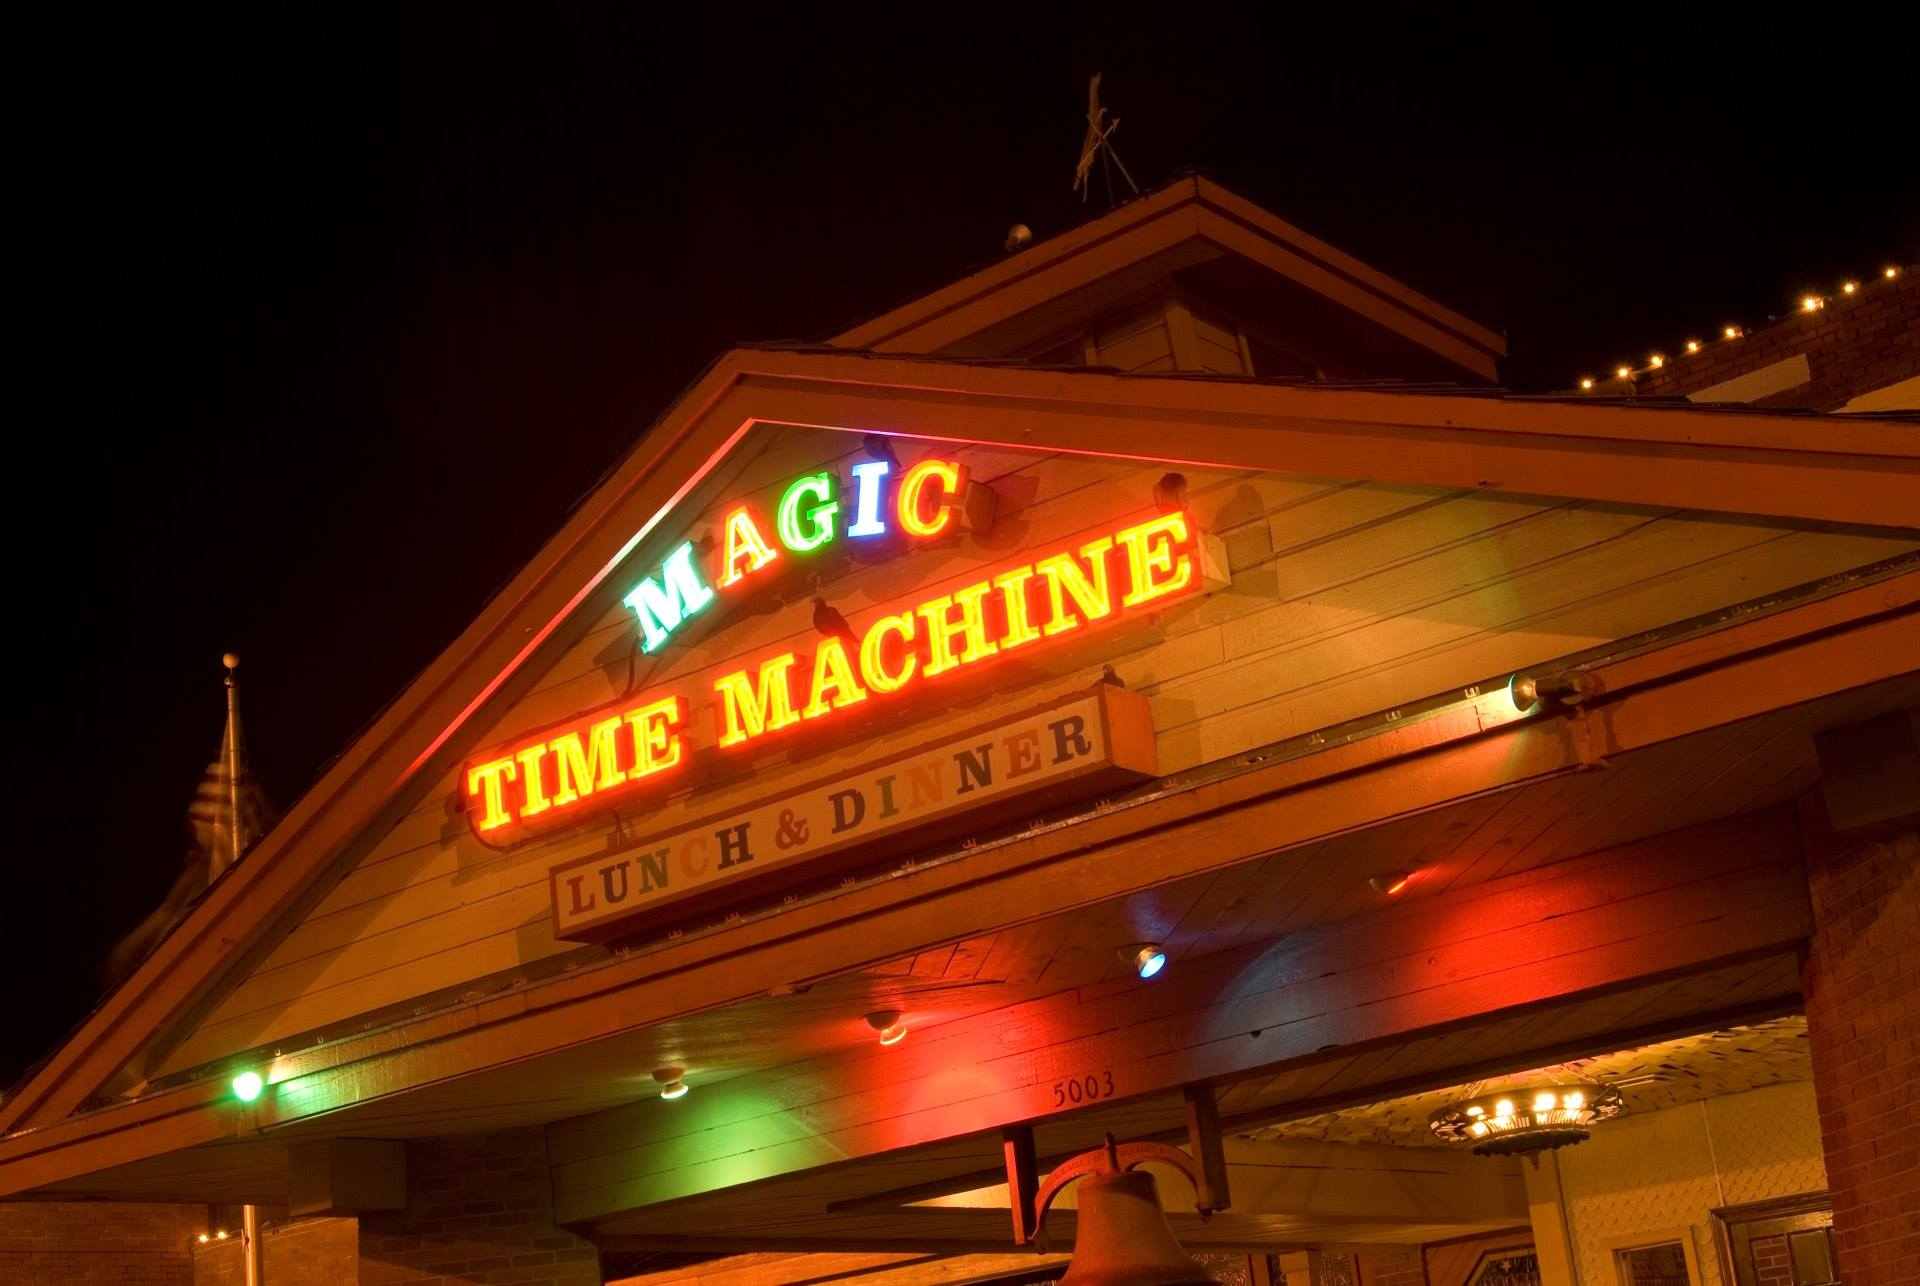 Magic Time Machine Is Most Whimsical Restaurant In Dallas